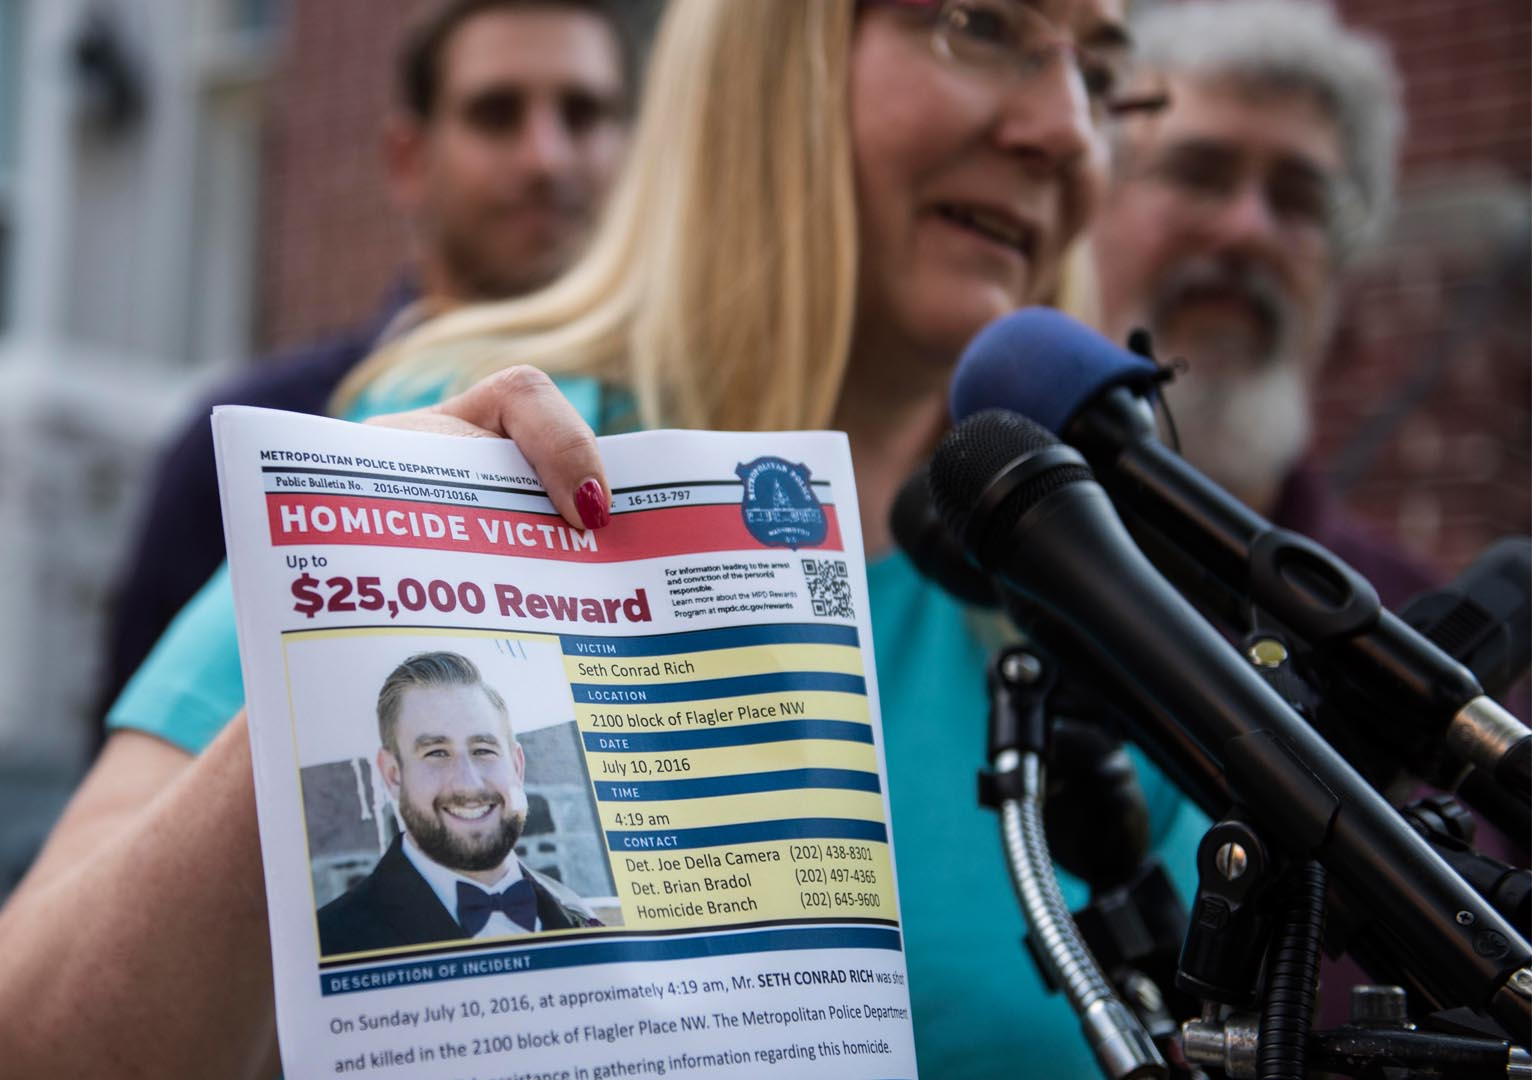 Investigator Now Says Murdered DNC Staffer Didn't Contact WikiLeaks Before Mysterious Death